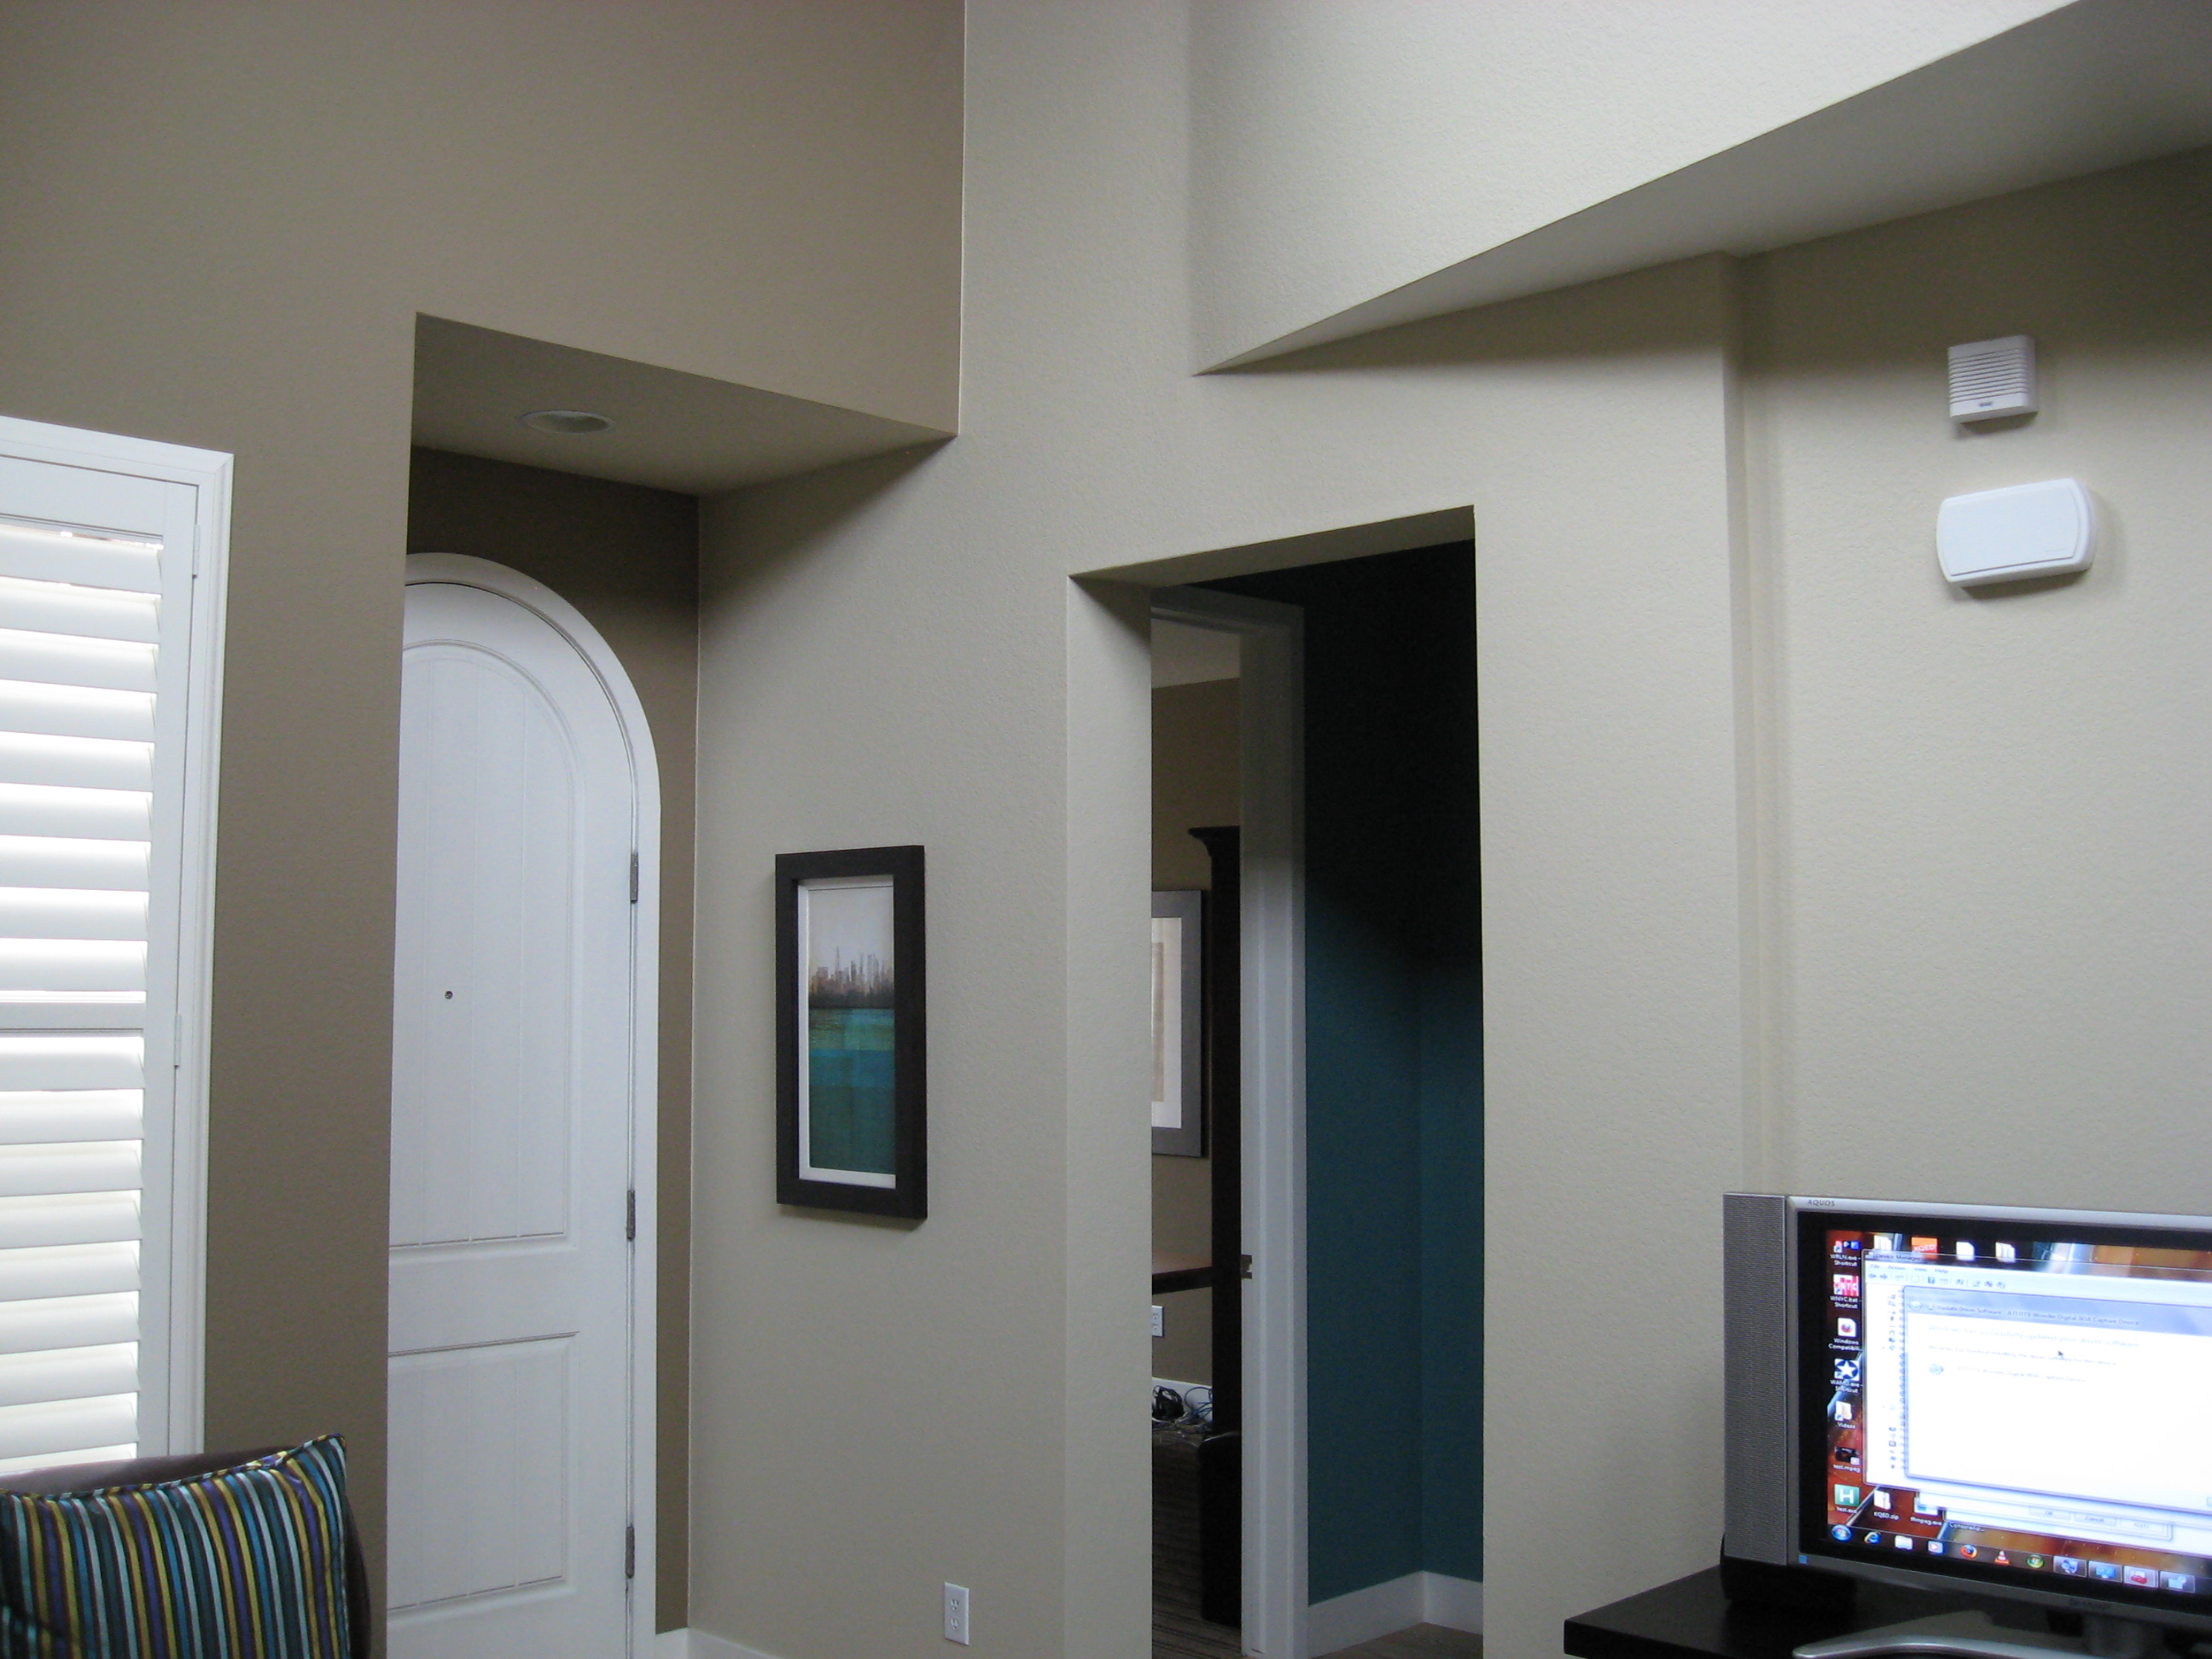 Interiors Painting Ideas Part - 15: ... Painting Ideas And Designs For Denver By Eco Paint, Inc.